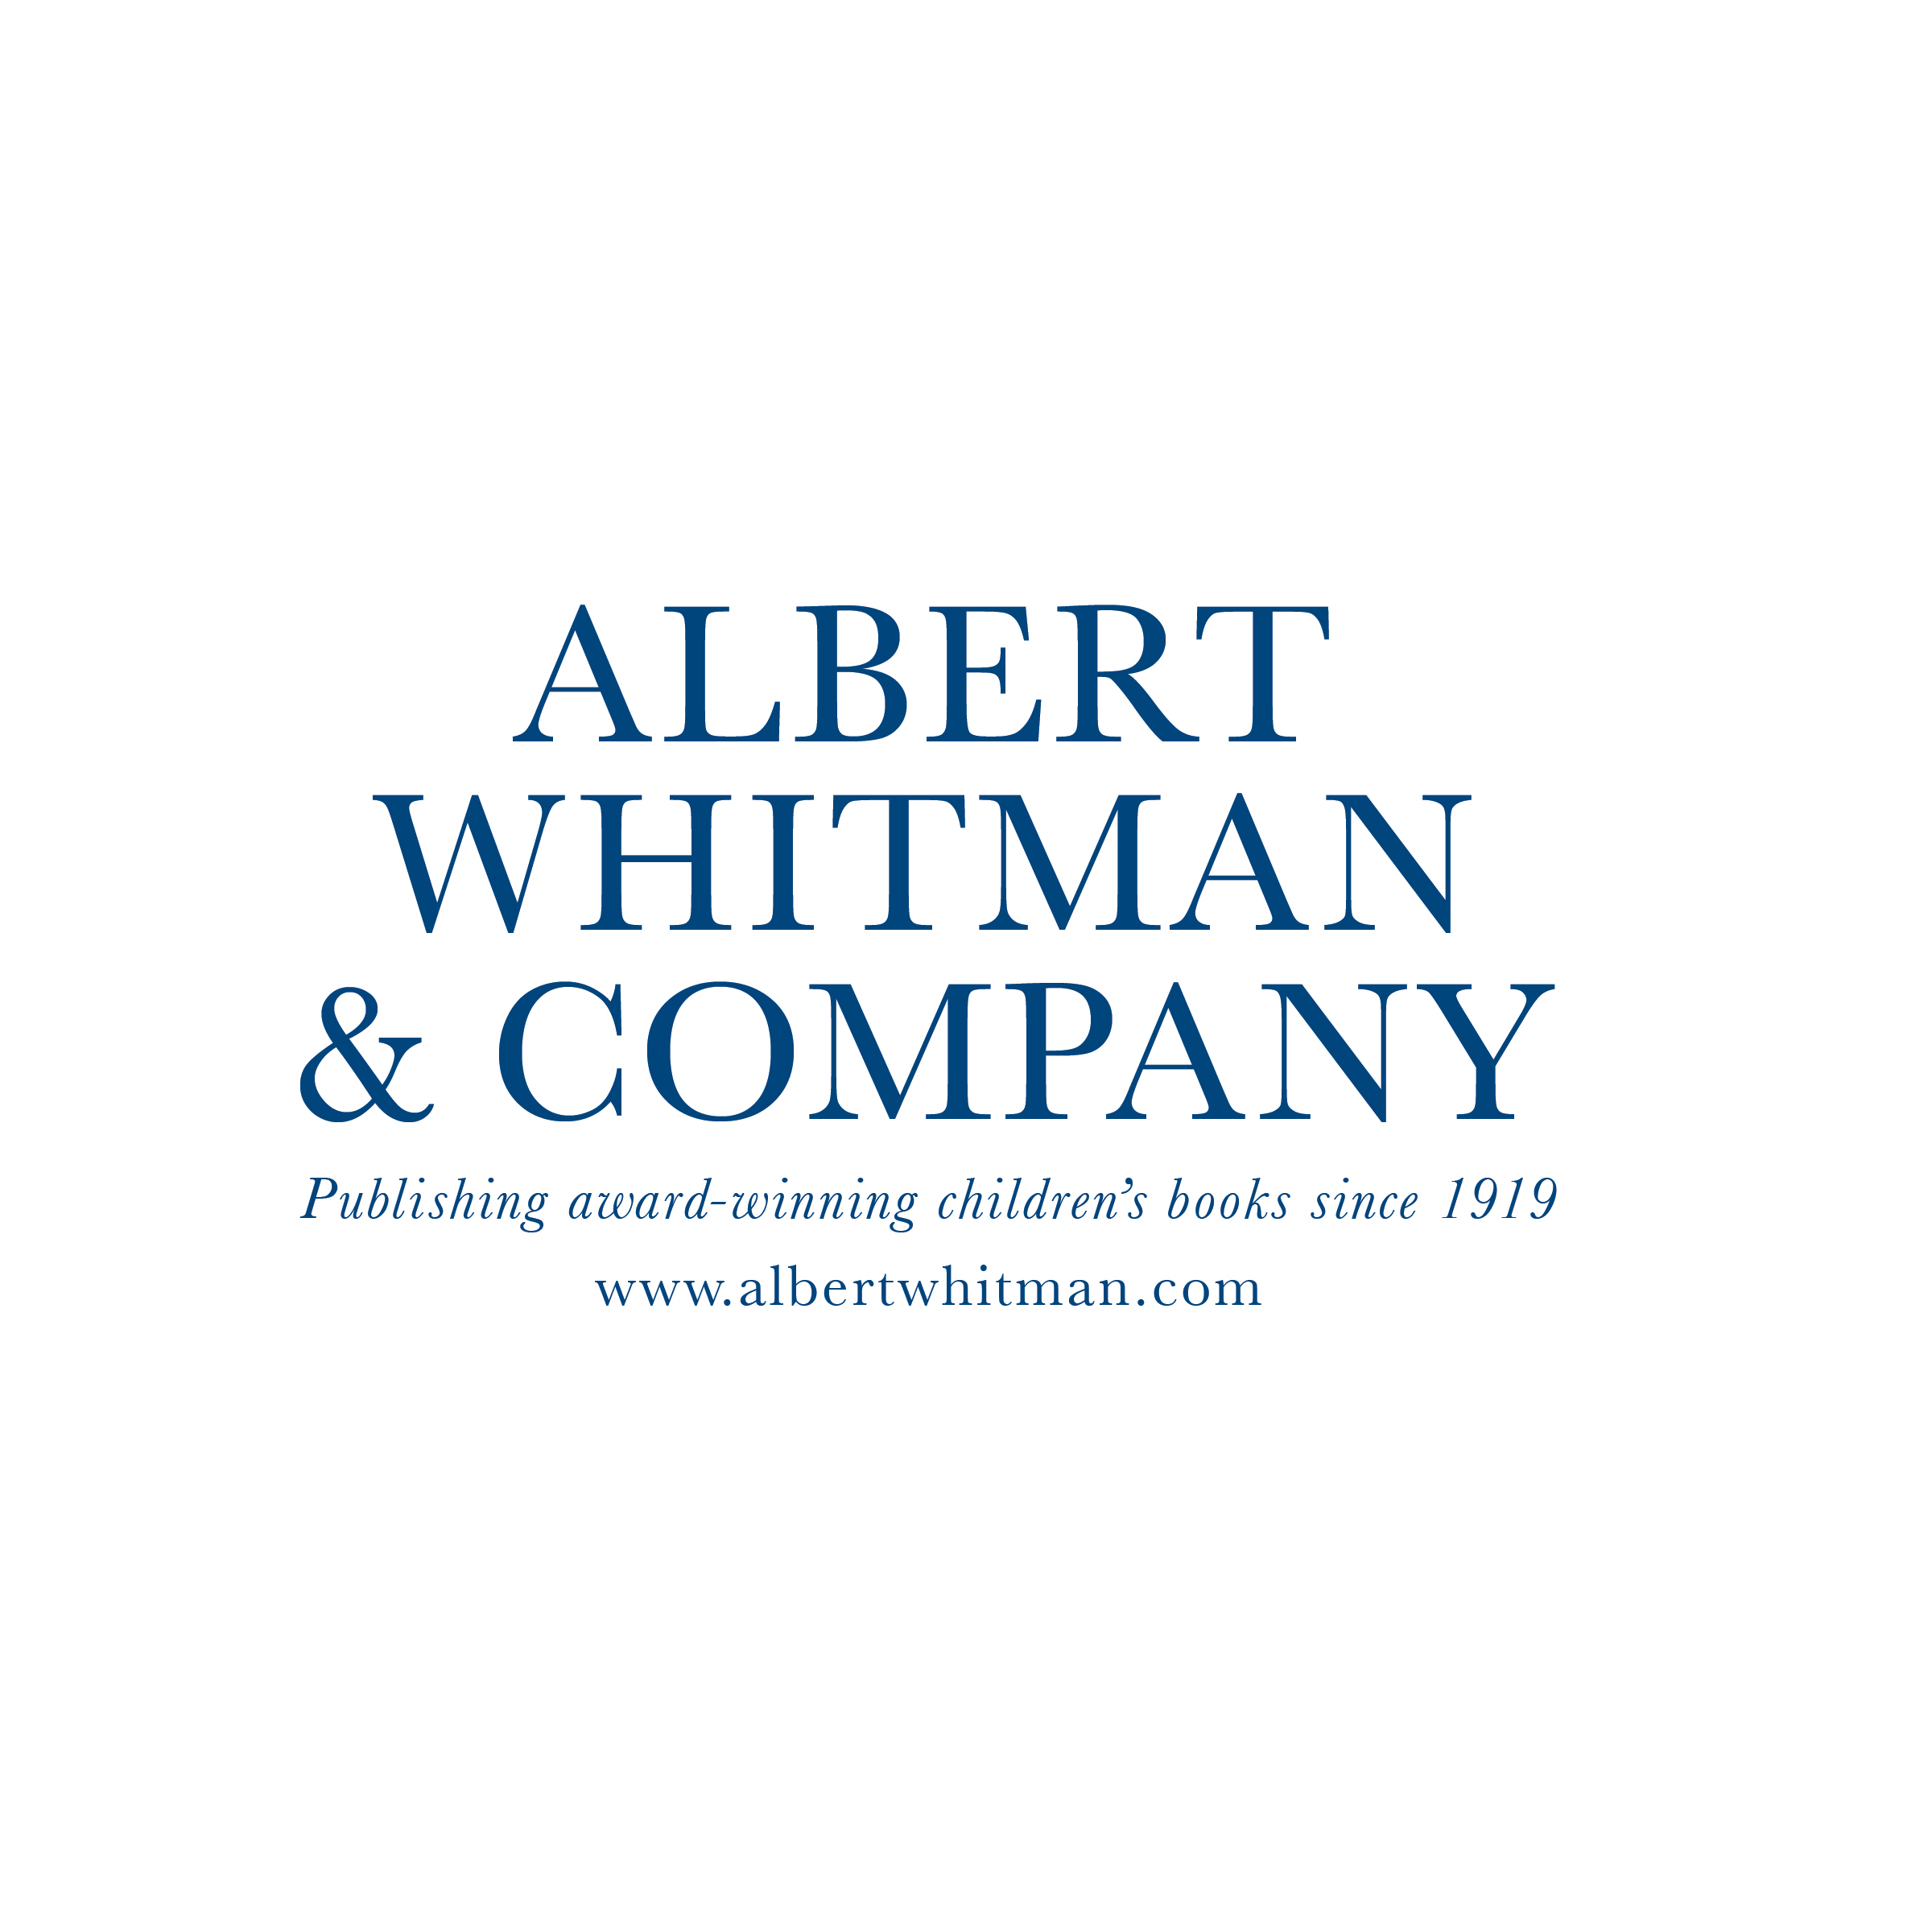 Albert Whitman & Company